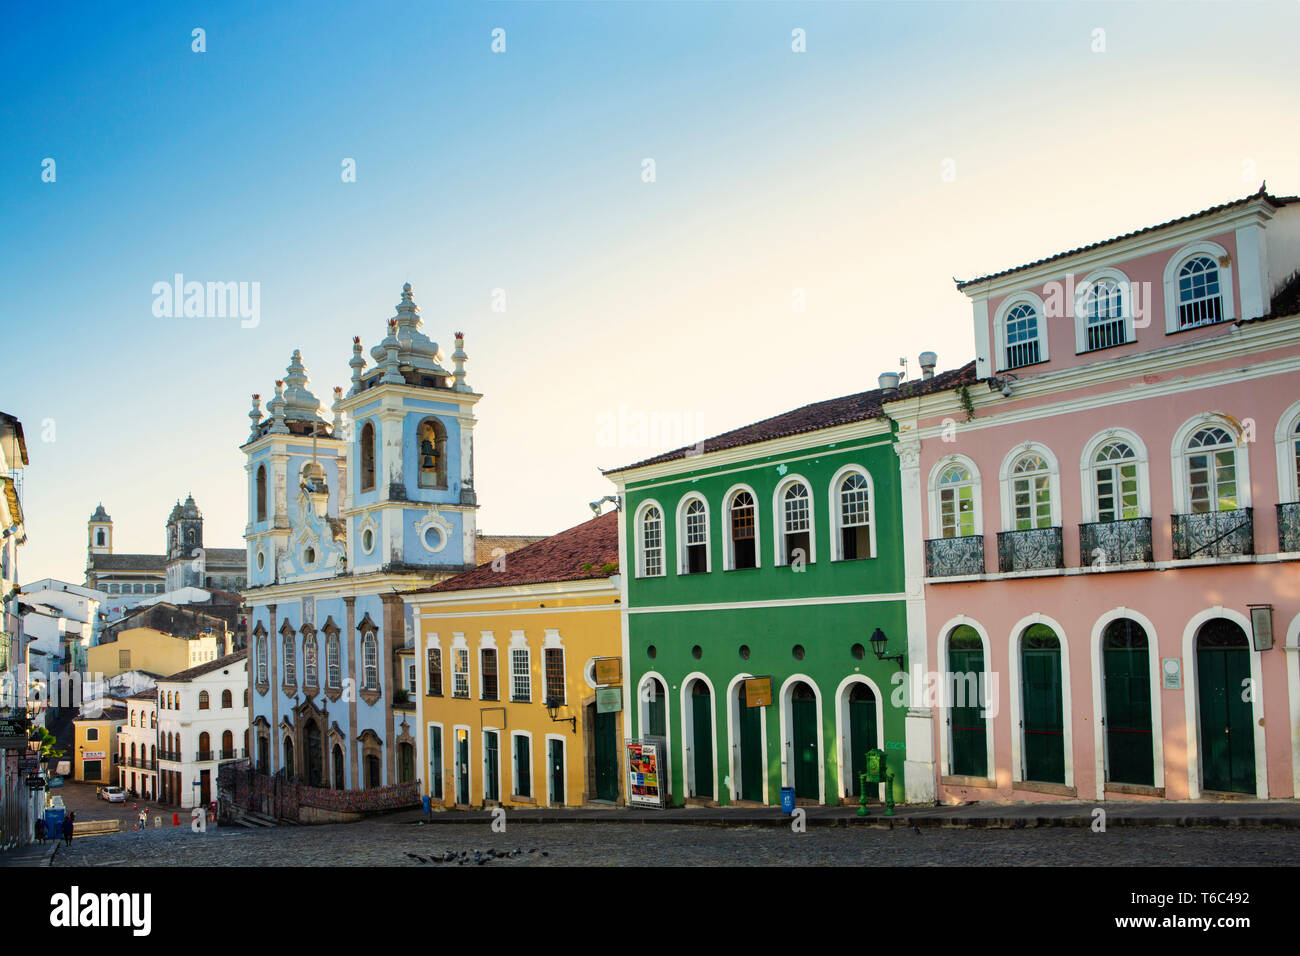 the Pelourinho showing Portuguese colonial buildings and the Church of the Third Order of Our Lady of the Rosary of the Black People - Stock Image